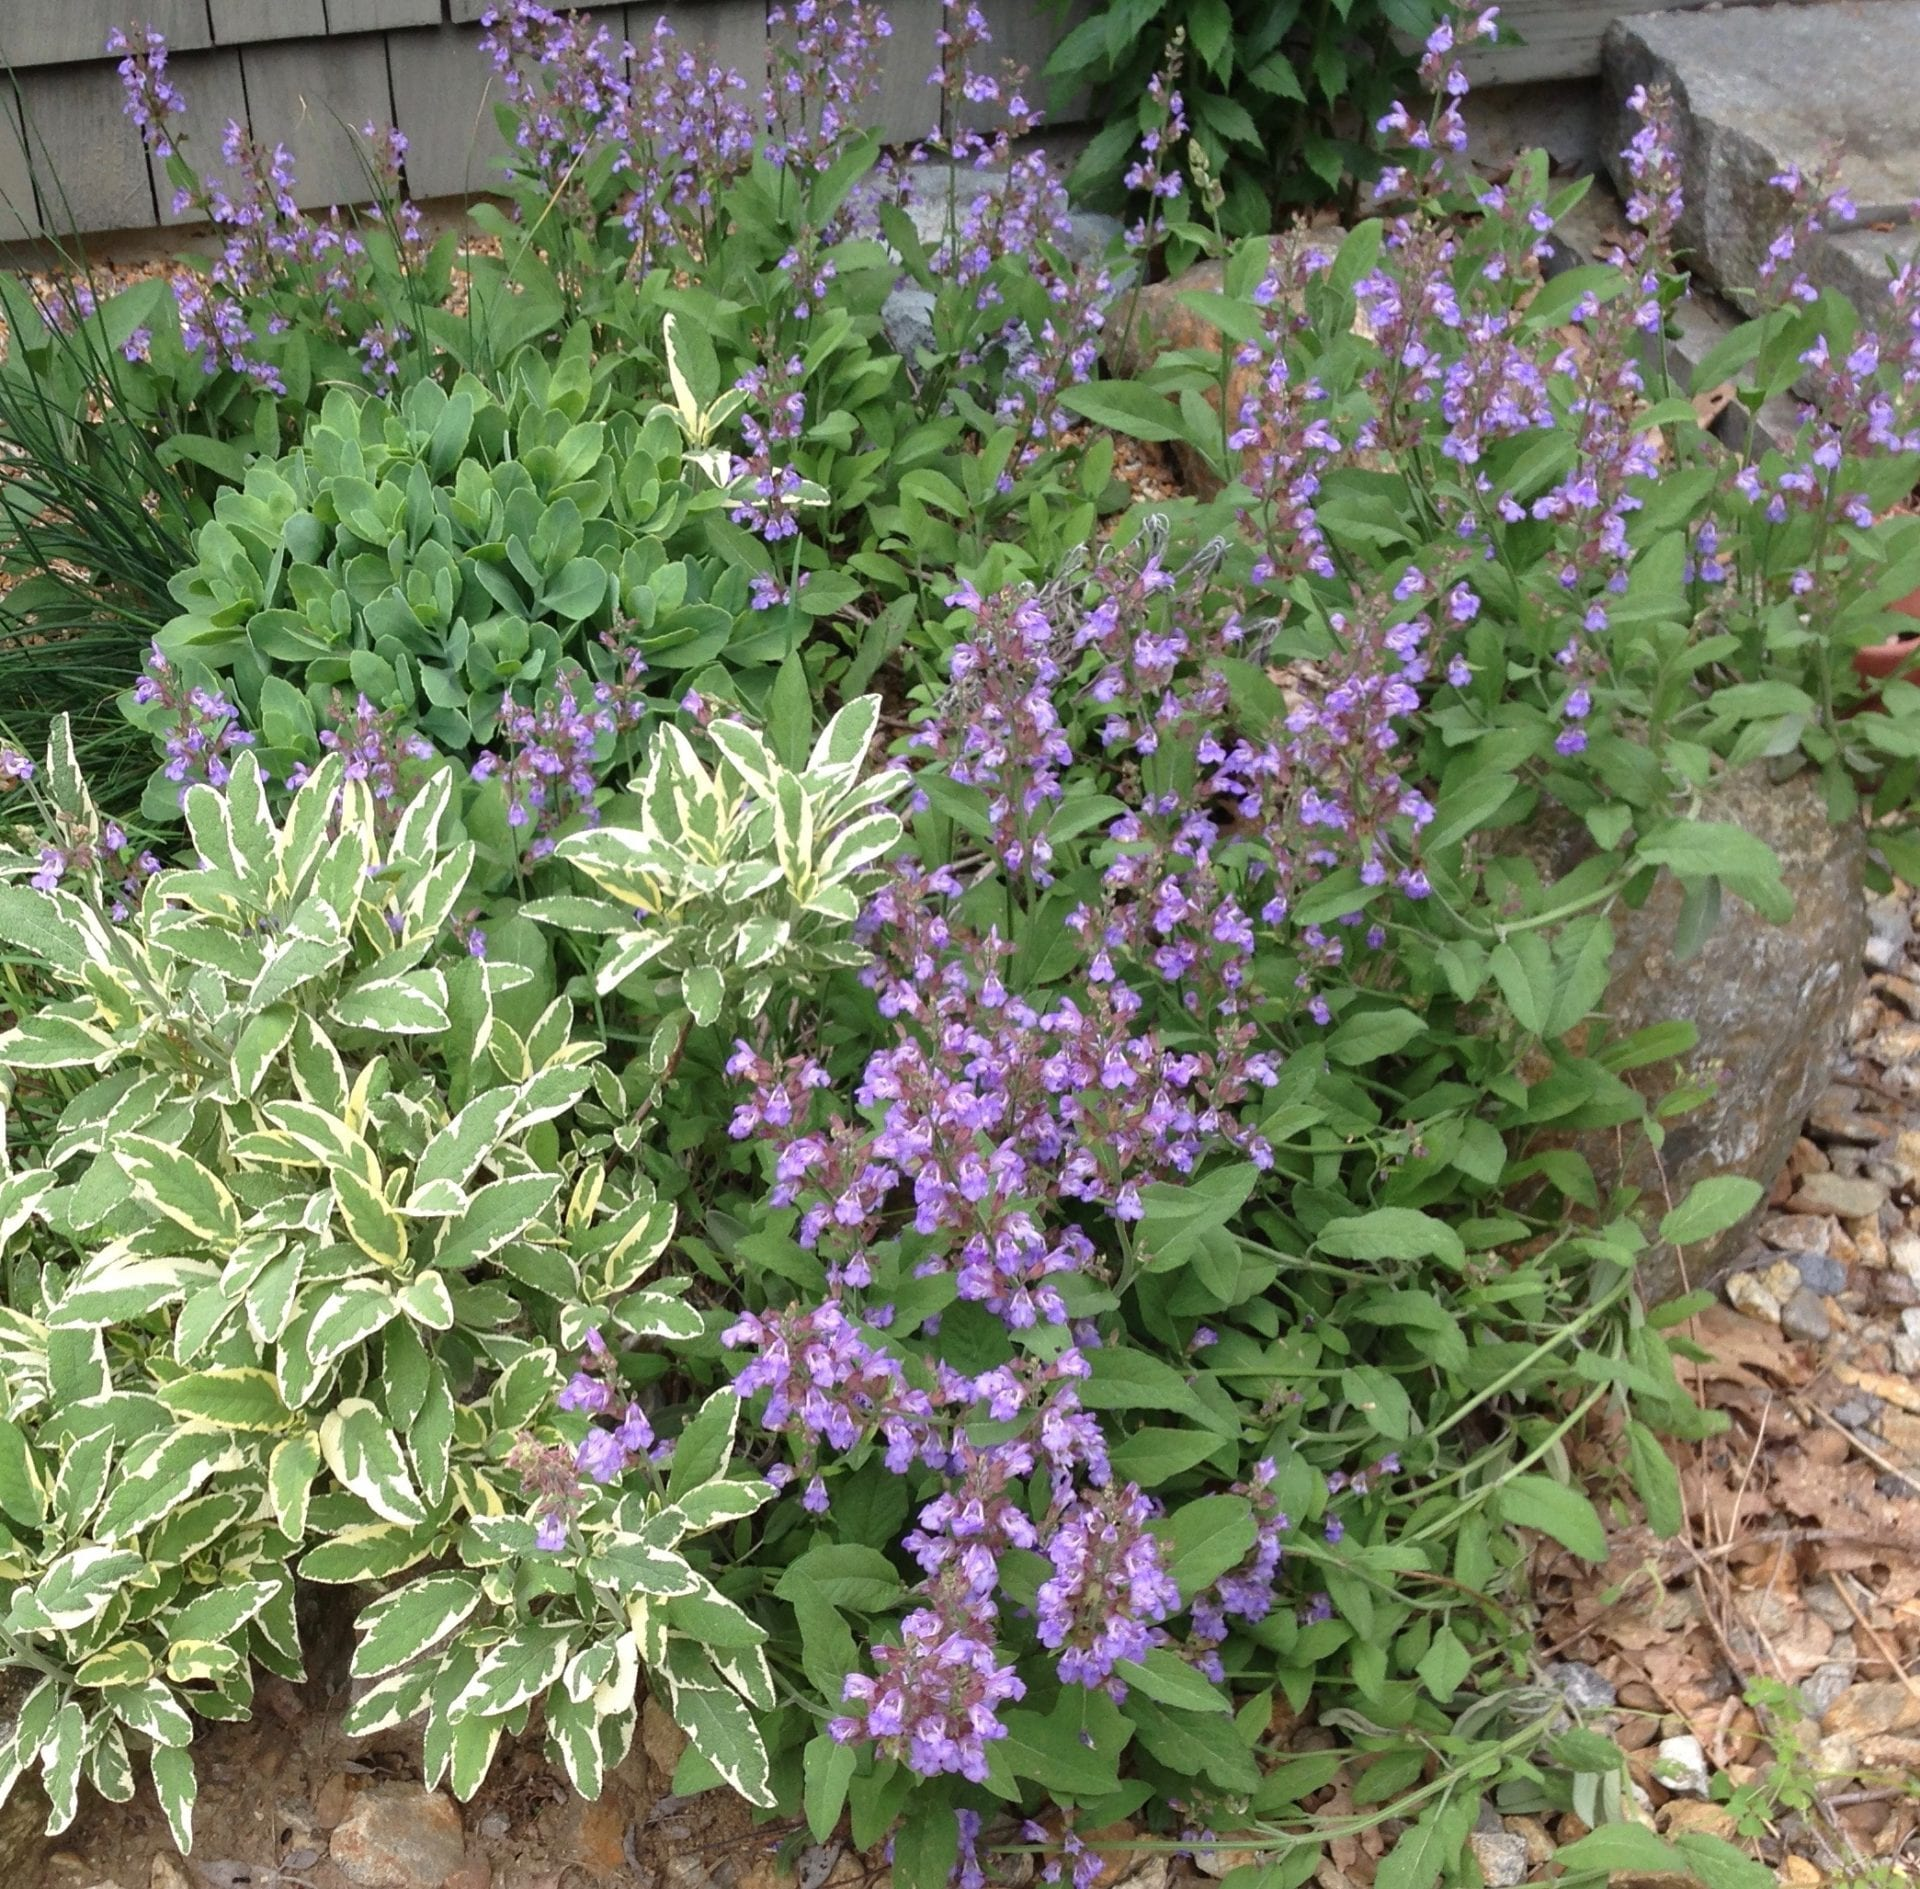 Creative environments landscape co edible gardens - Common Sage Salvia Officinalis The Traditional Herb For Flavoring Poultry Stuffing Can